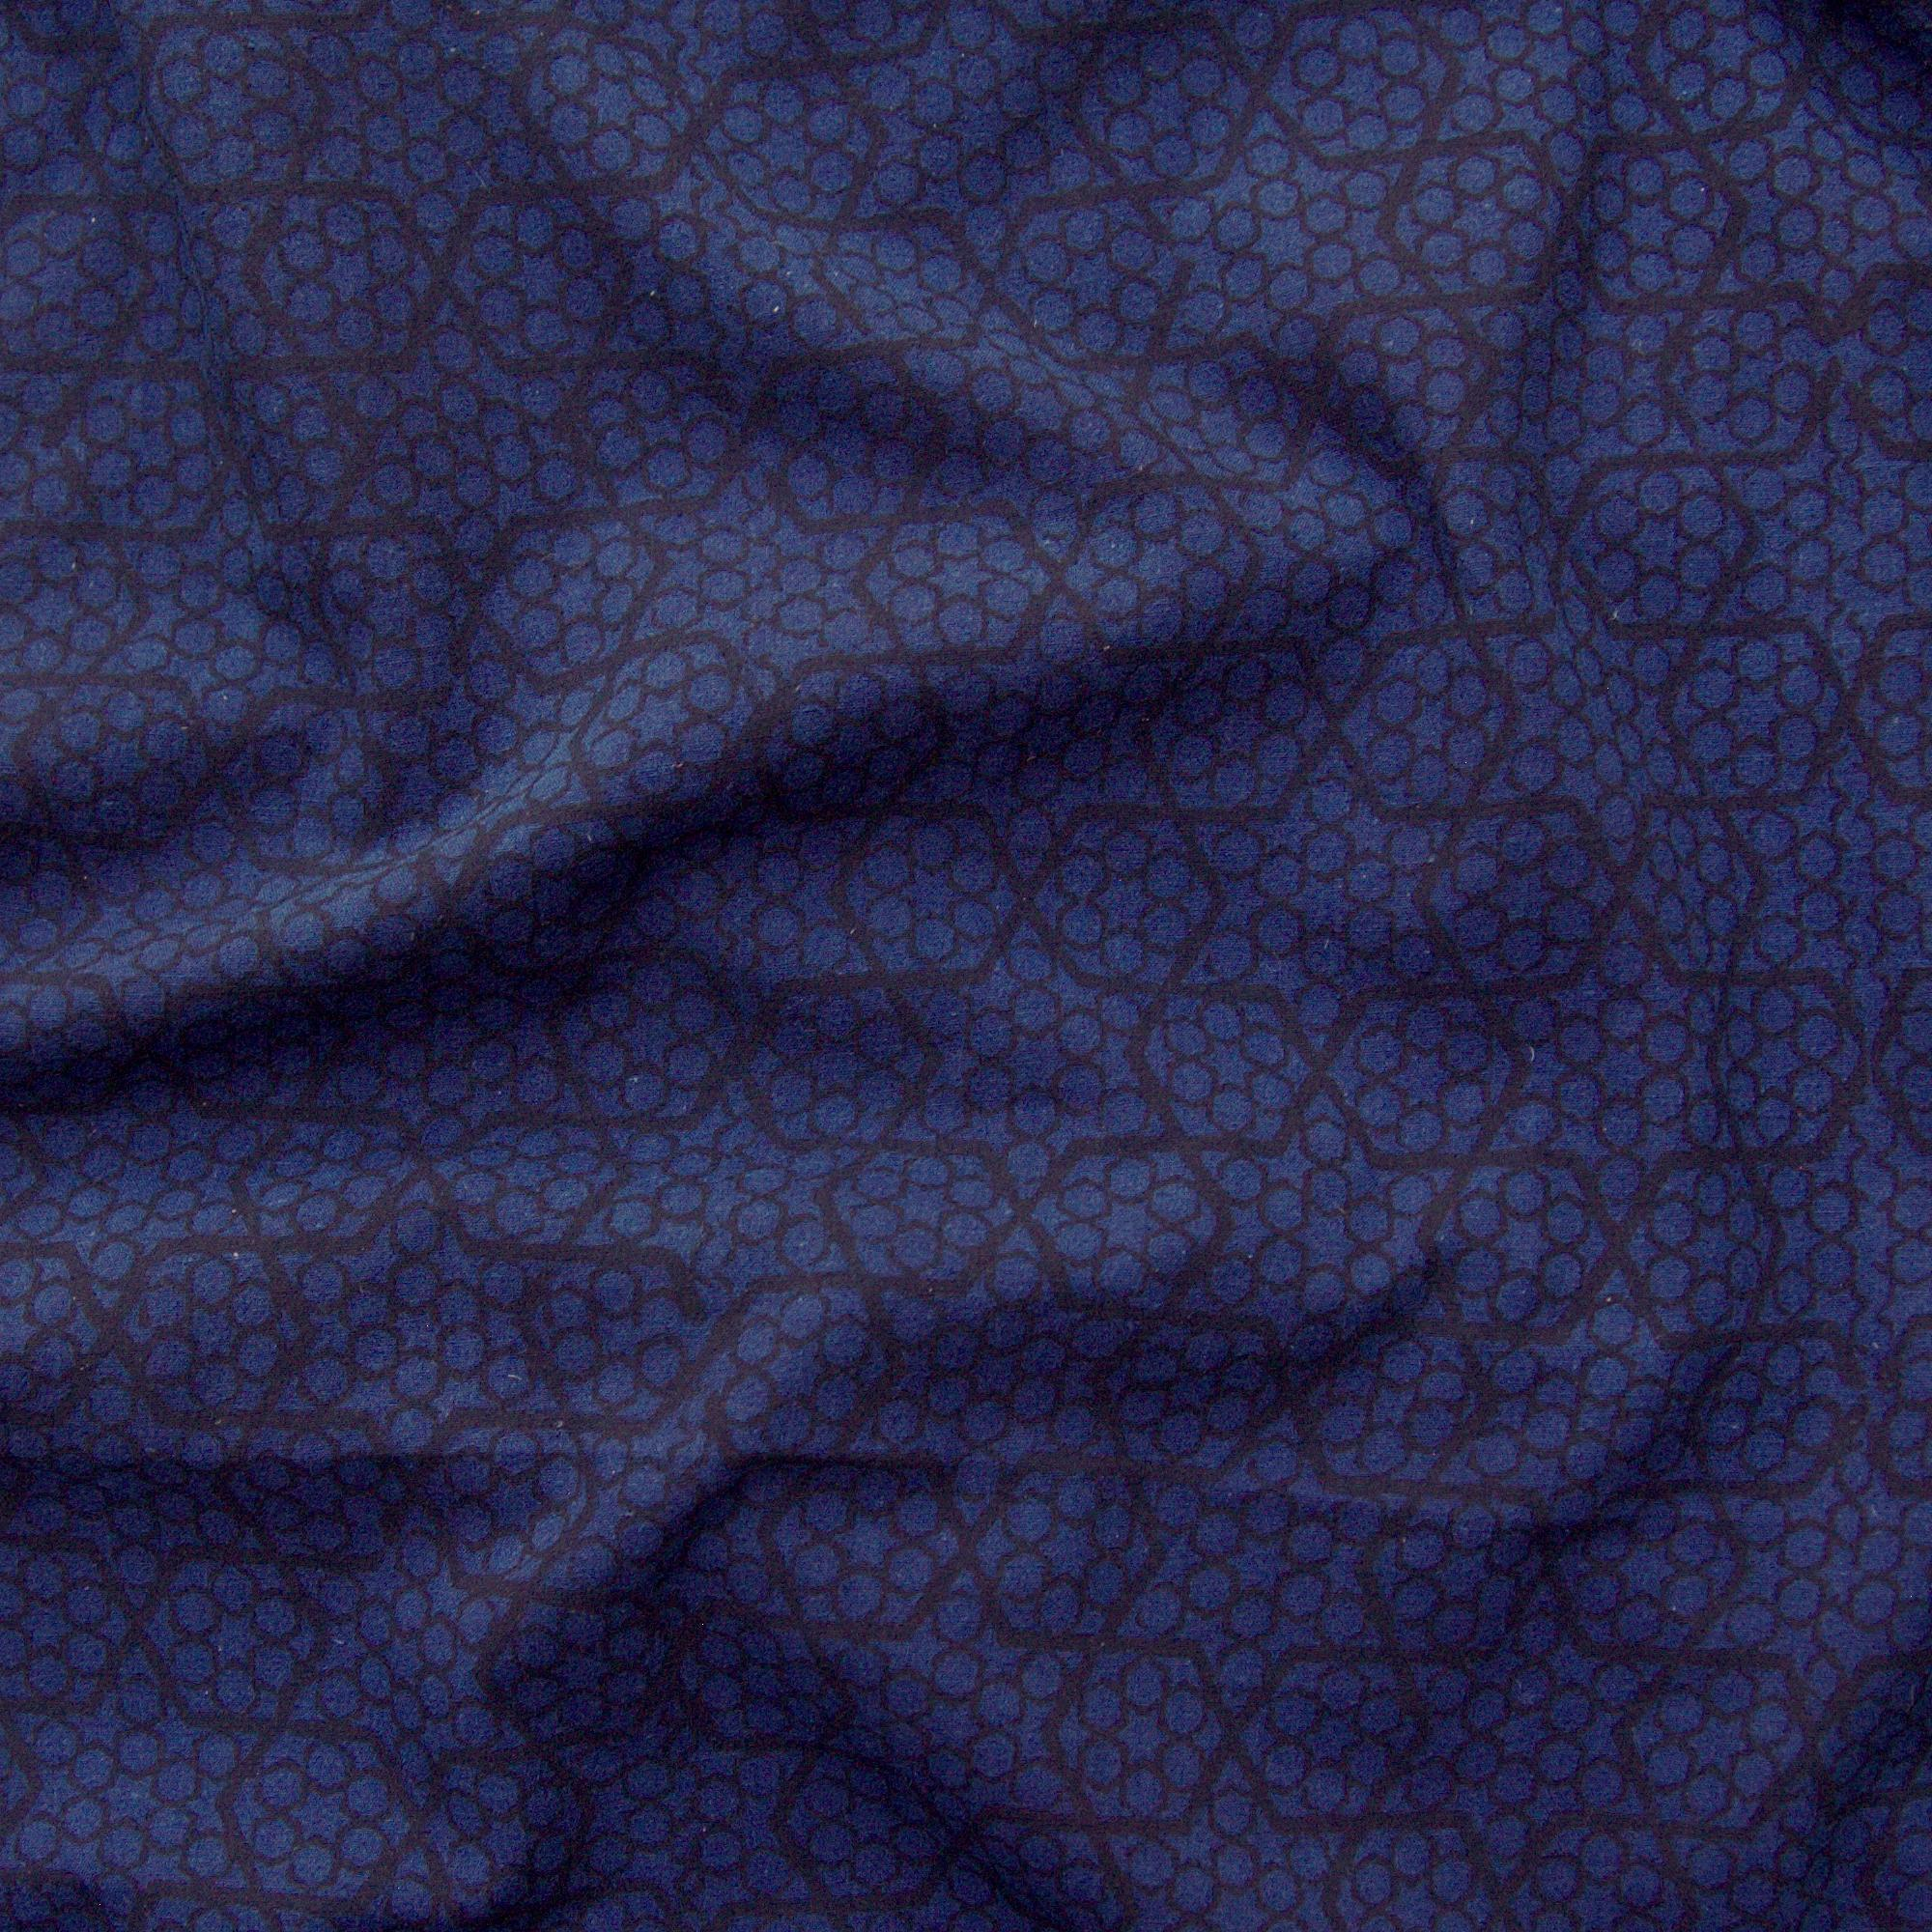 100% Block-Printed Cotton Fabric from India - Ajrak - Indigo Black Honey Comb Print - Contrast